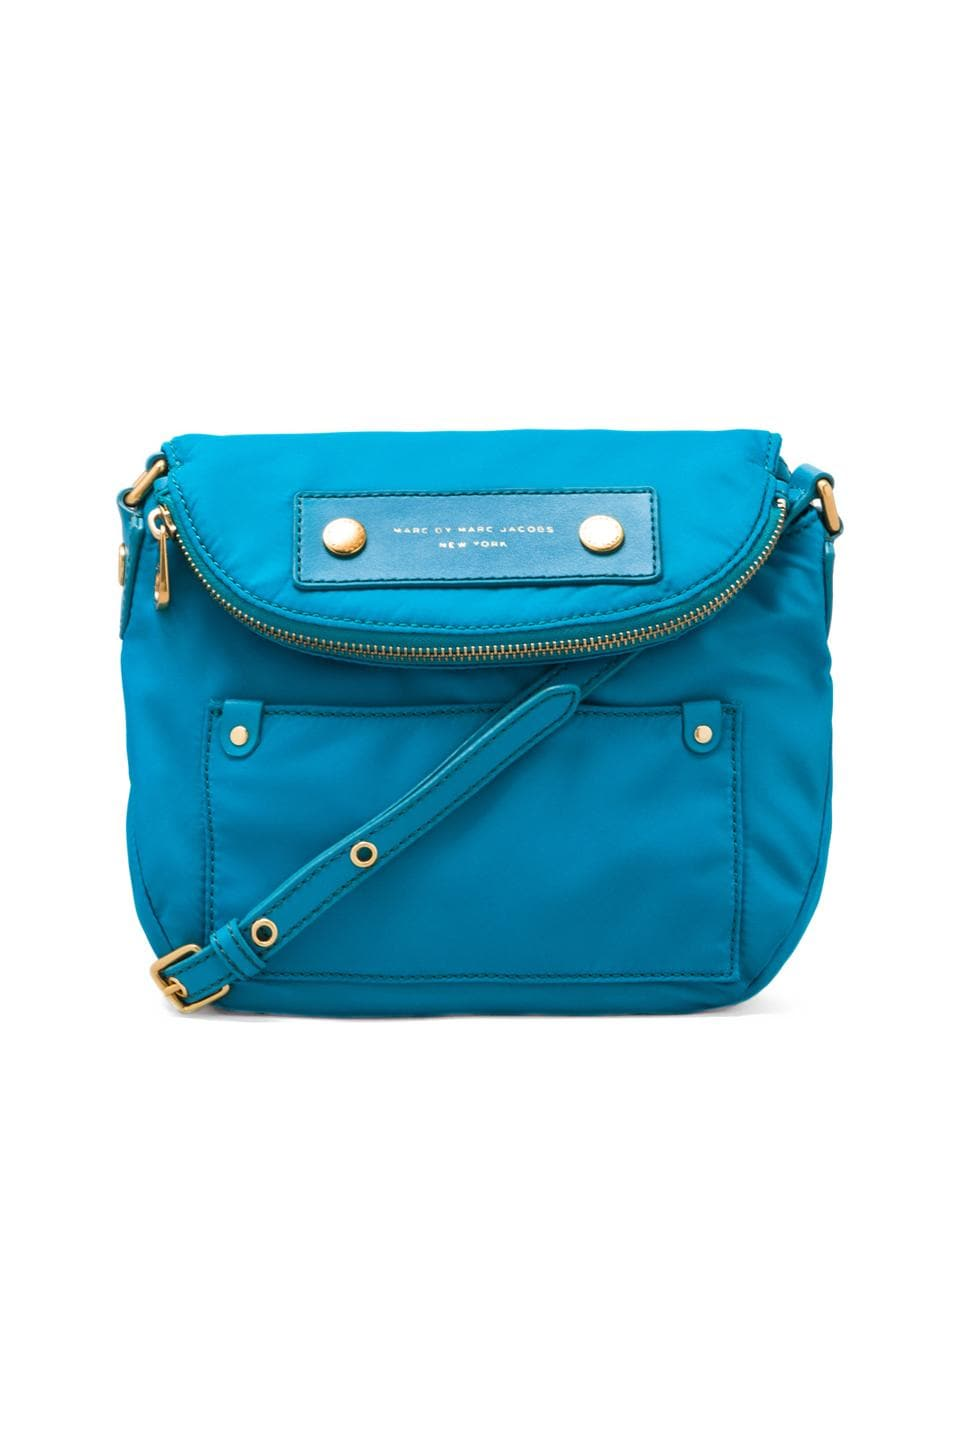 Marc by Marc Jacobs Preppy Nylon Mini Natasha in Bermuda Palm